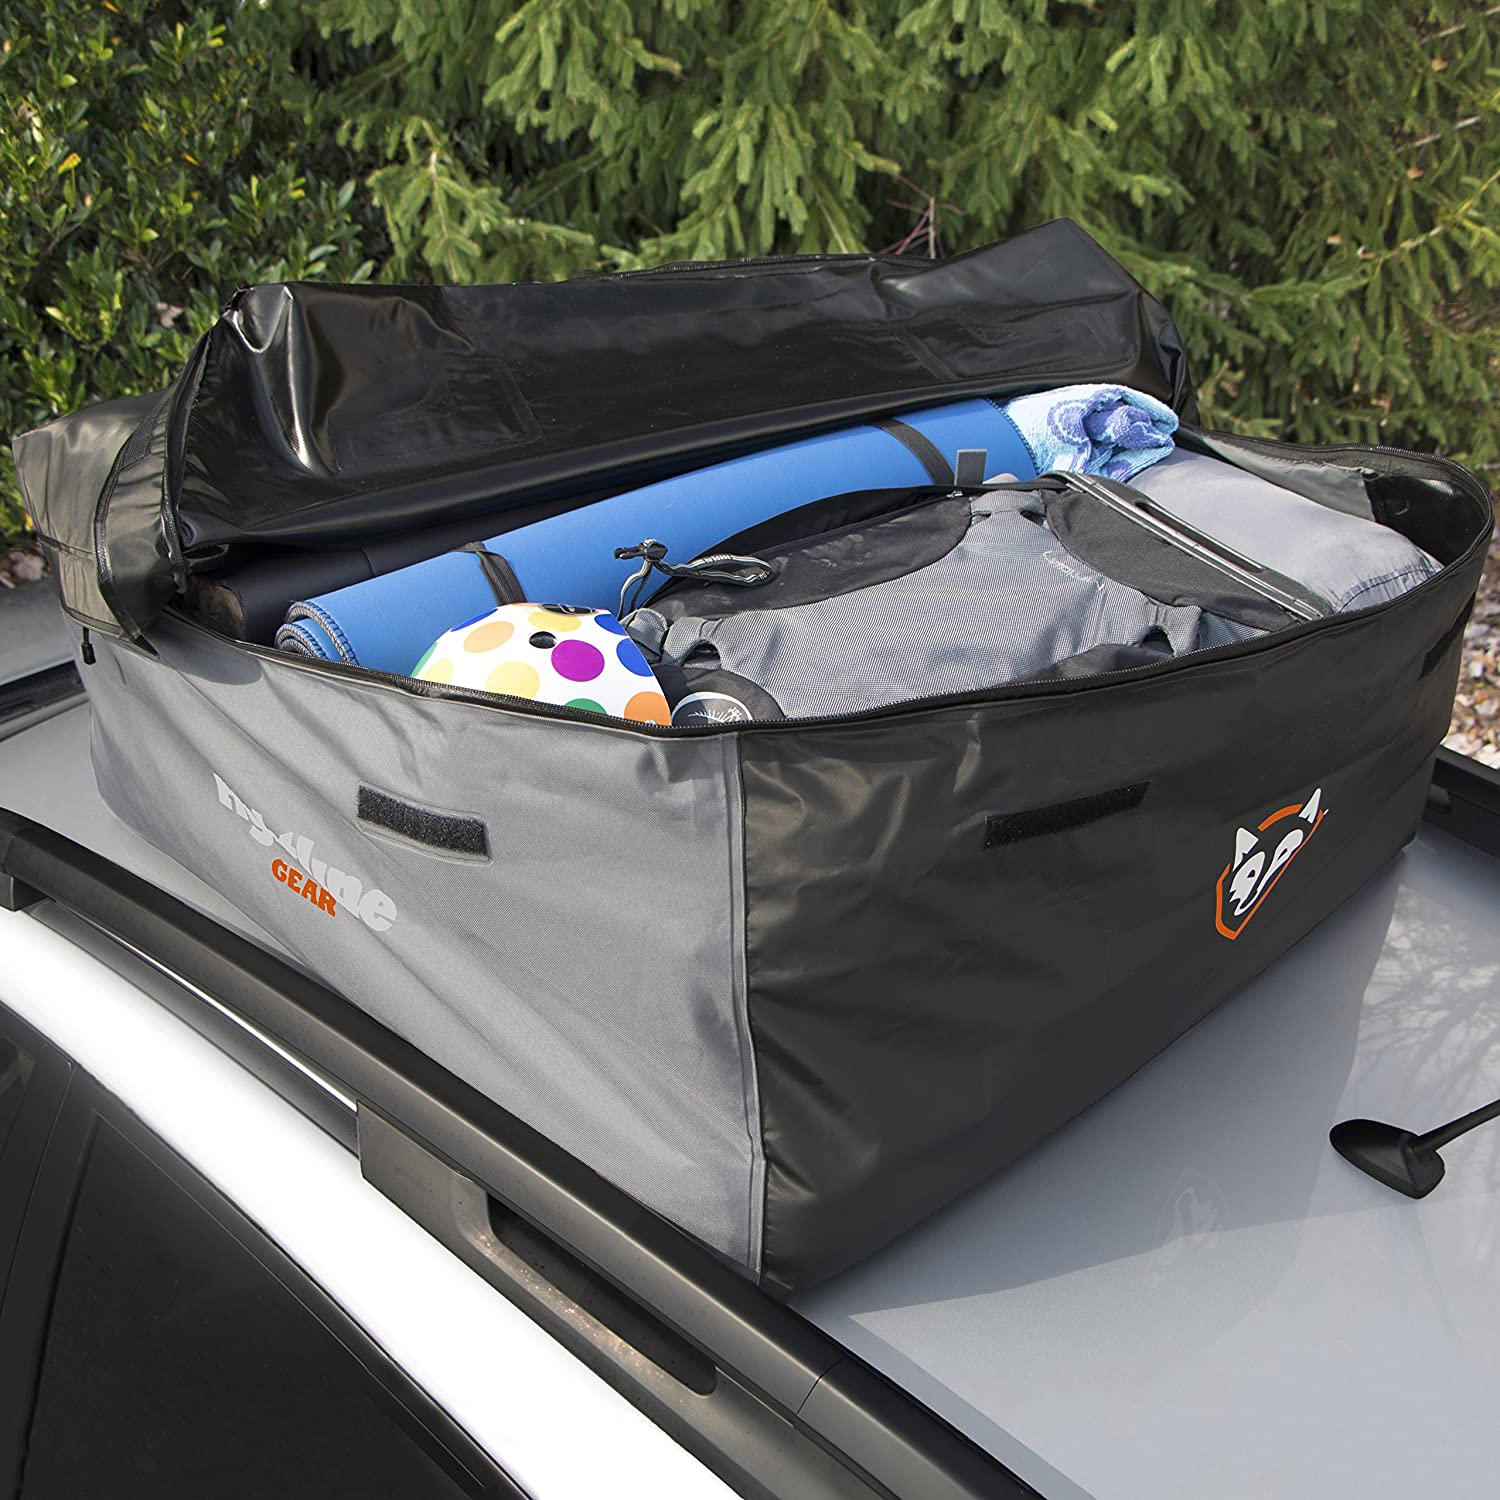 12 Cubic feet 100/% Waterproof Rightline Gear 100S10 Sport 1 Car Top Carrier Works with or Without Vehicle roof Rack